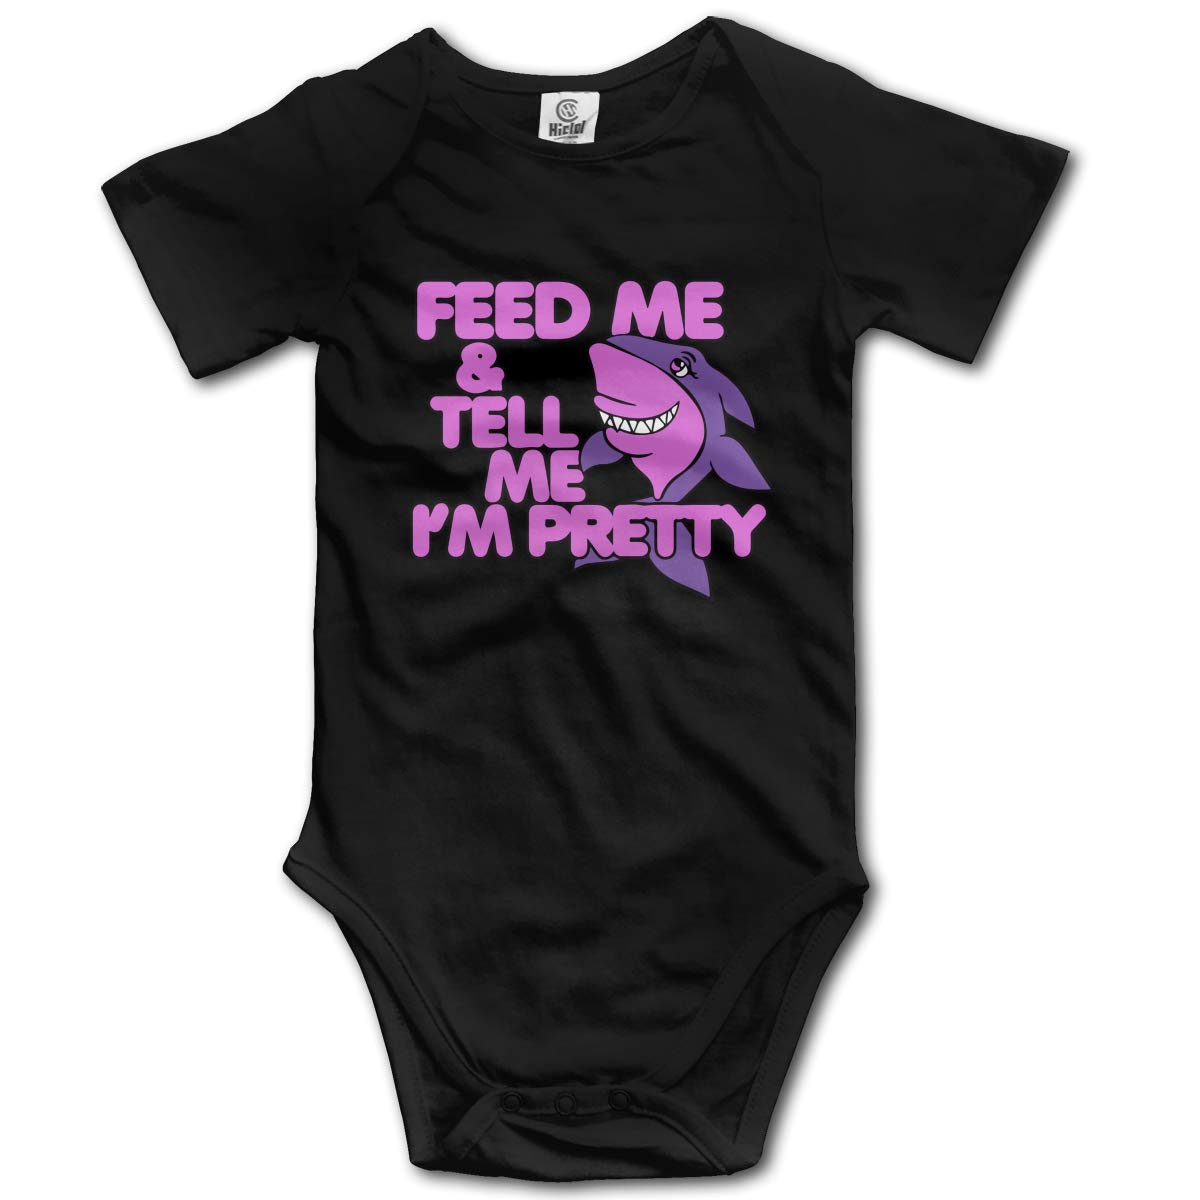 Feed Me and Tell Me Im Pretty Baby Unisex Short Sleeve Romper Pajamas 0-2T